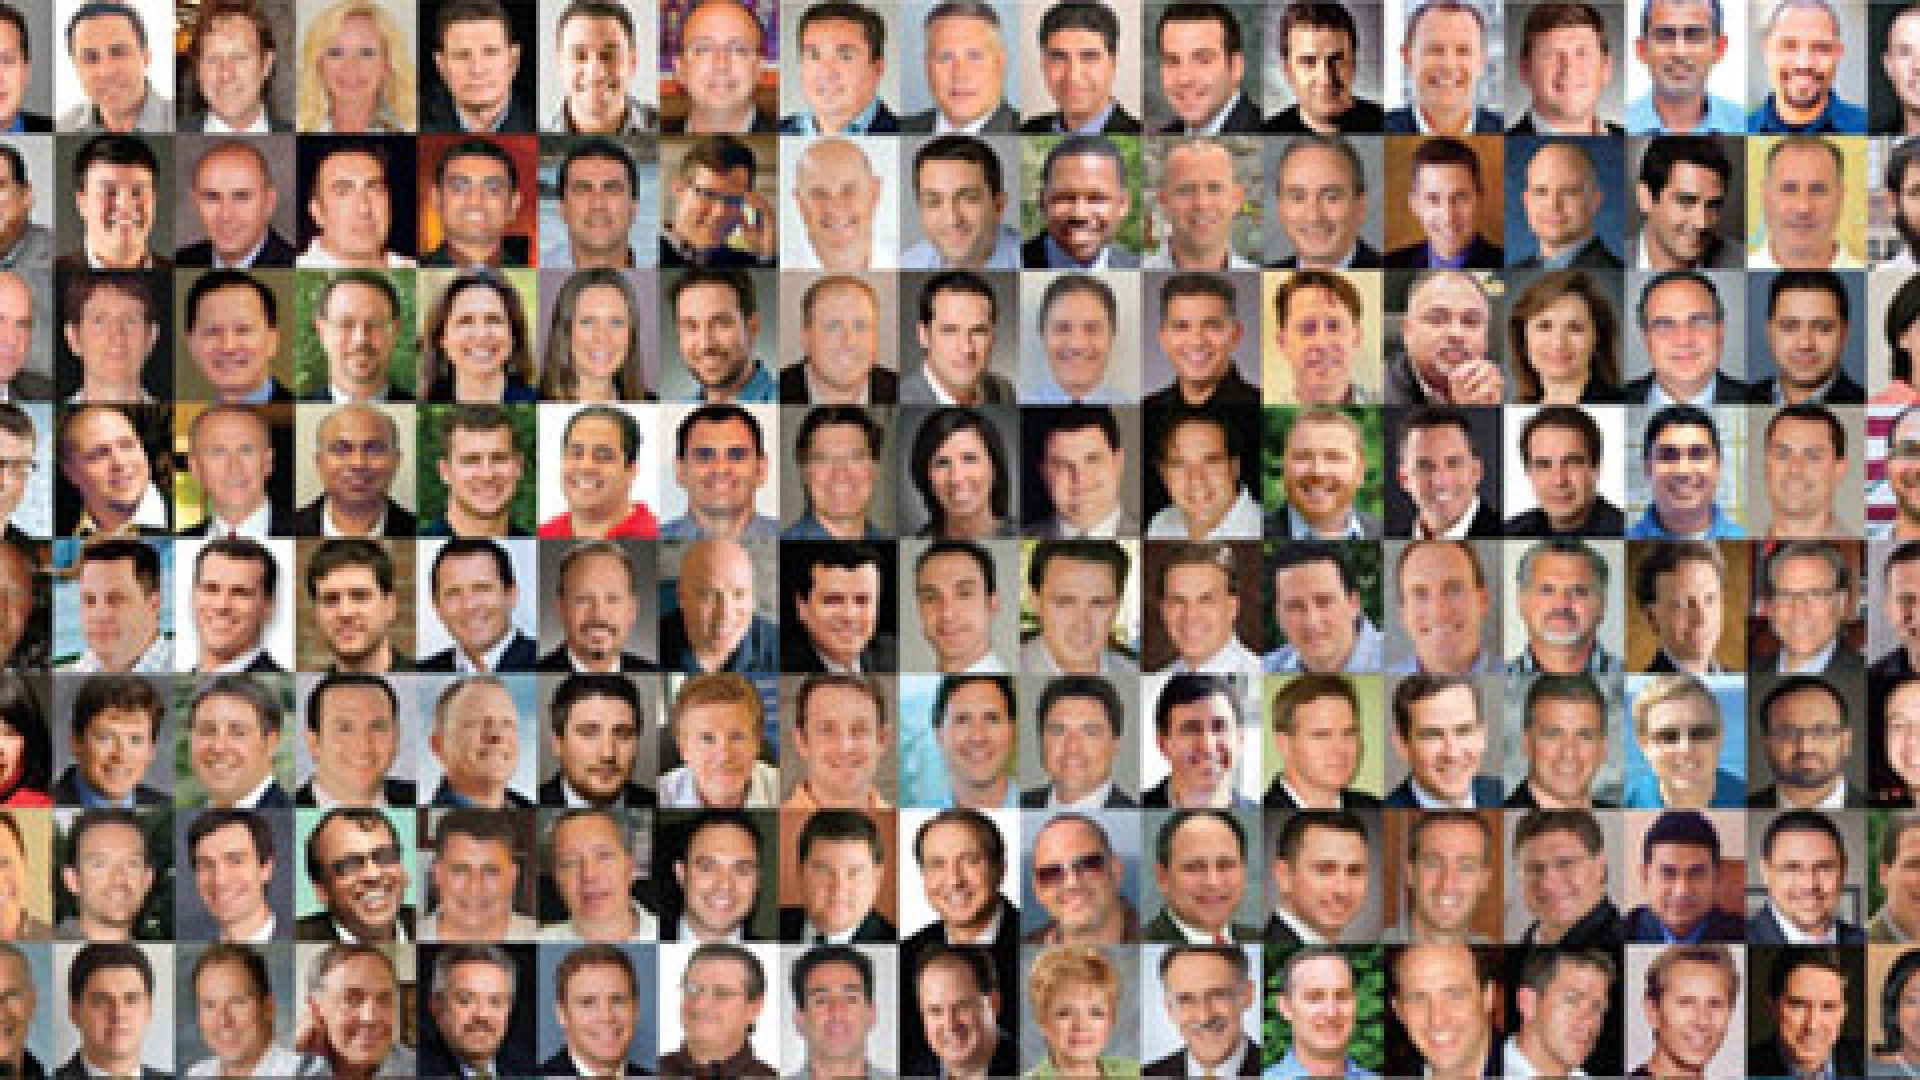 <b>Affirmative</b> These are the people who run the companies of the 2011 Inc. 500. We asked them whether they could imagine their companies producing a billion dollars in annual revenue;157 said yes.